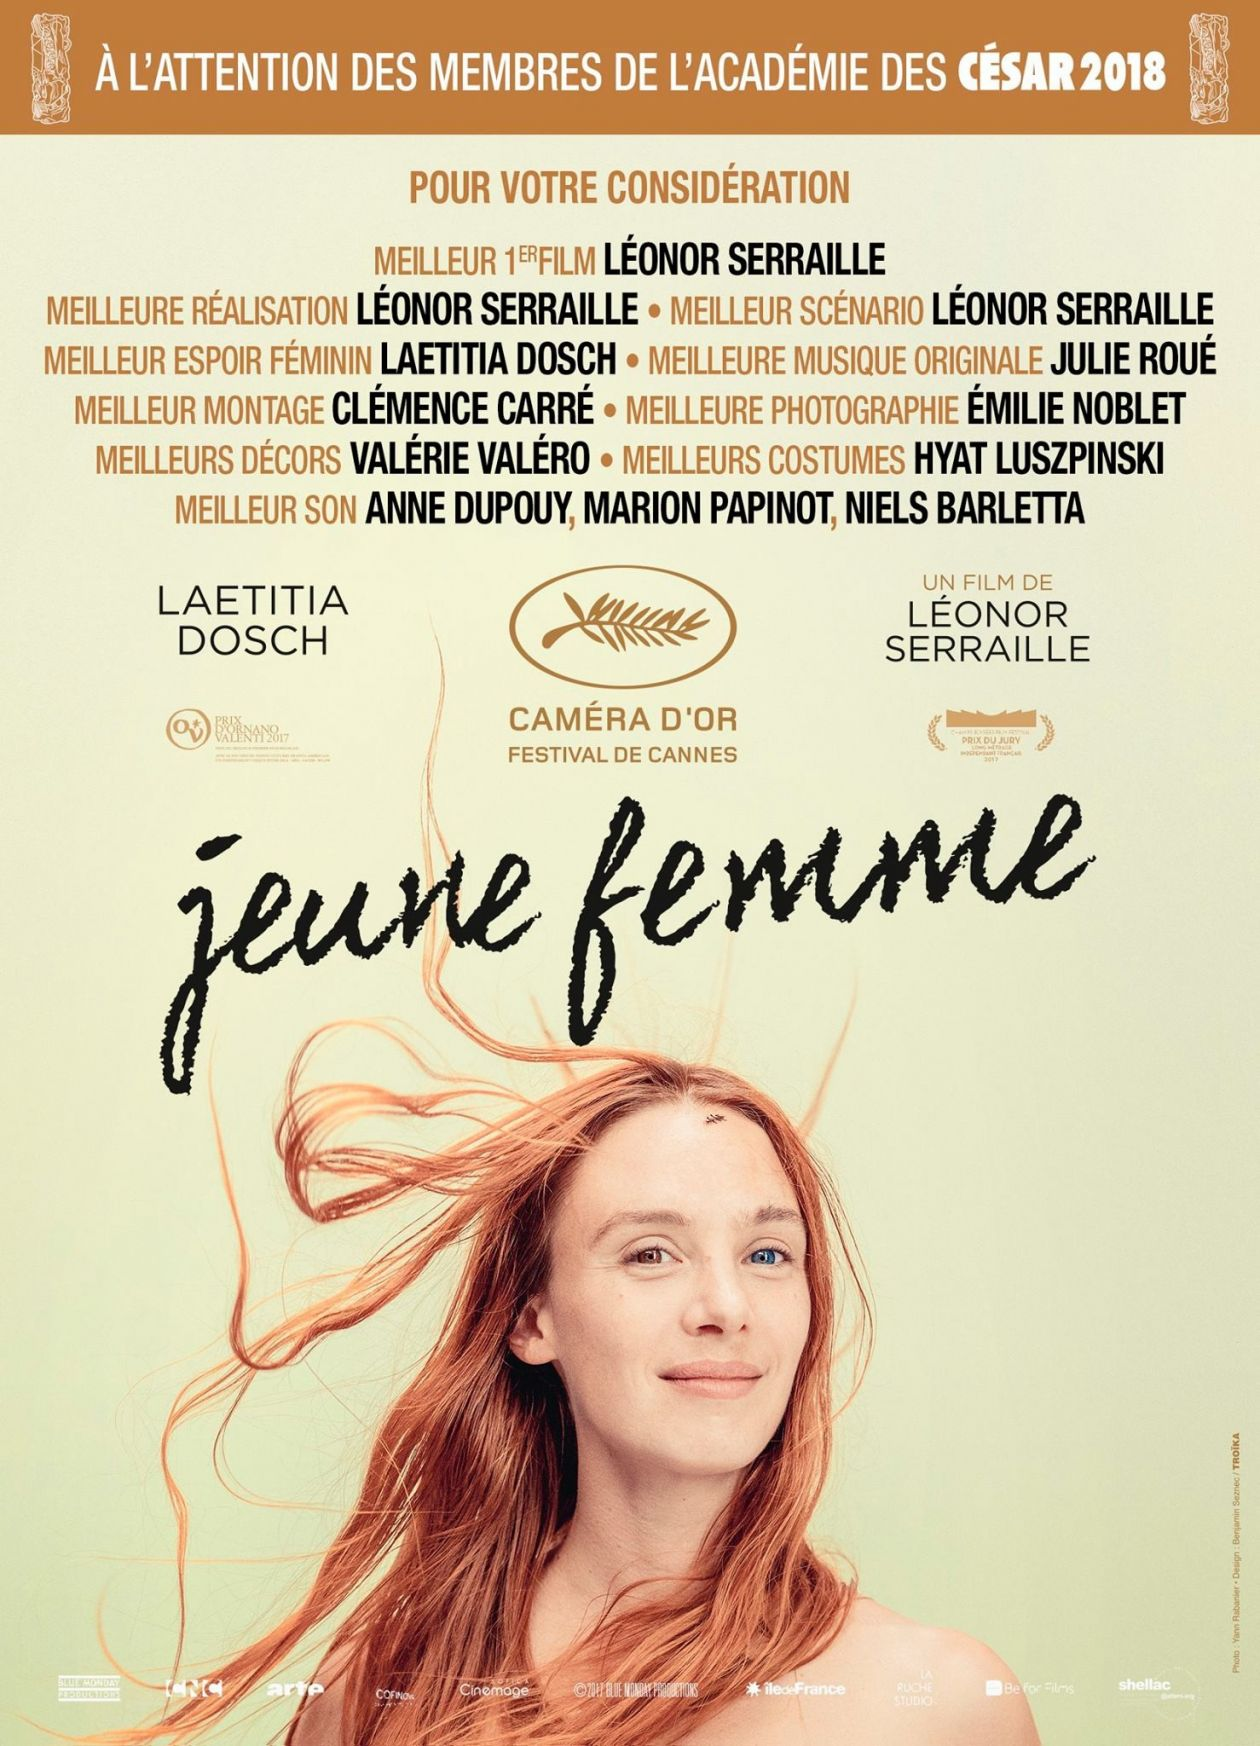 Laetitia Dosch French and Swiss actress / Jeune femme / Léonor Serraille 2017 / Movie Poster / Affiche du film : César 2018 / Film éligible / Pour votre considération, A l'attention des membres de l'Académie des César